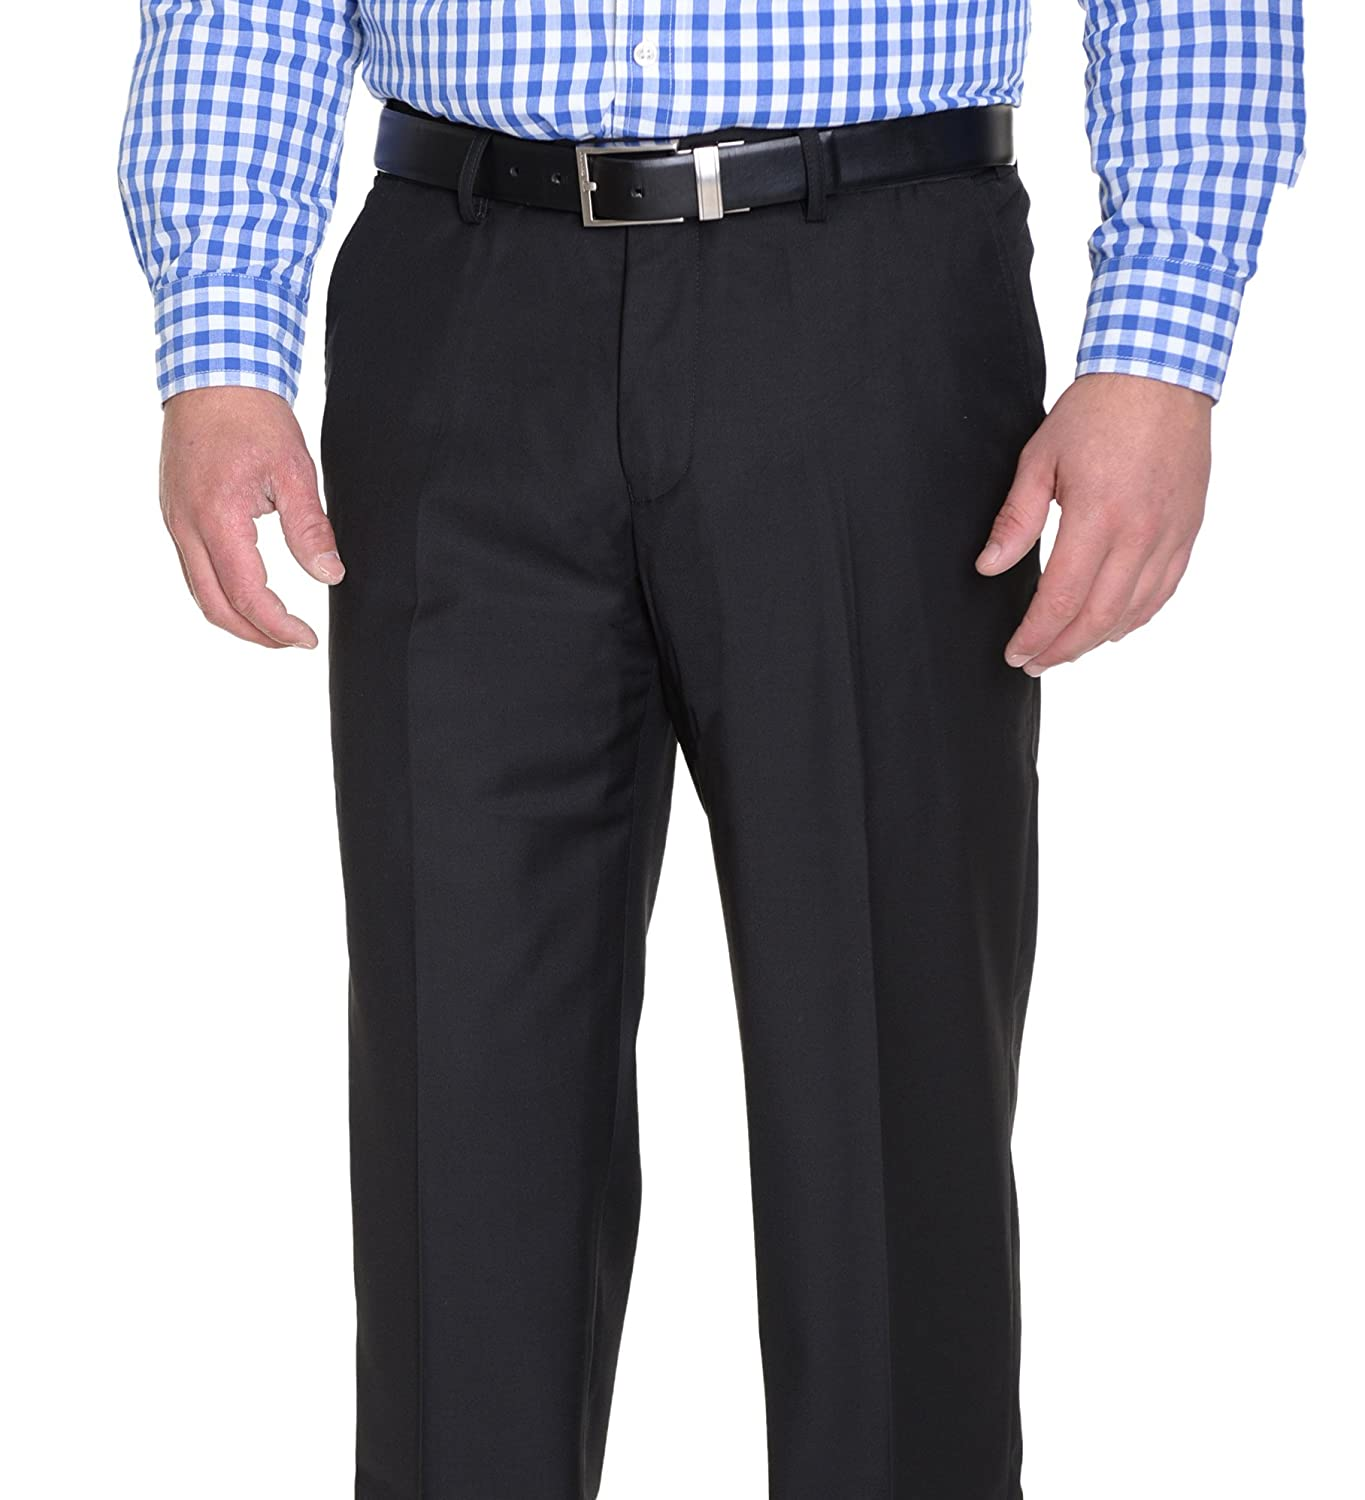 WSPLYSPJY Mens Business Classic Straight Slim Fit Solid Color Plain Flat-Front Chino Pants